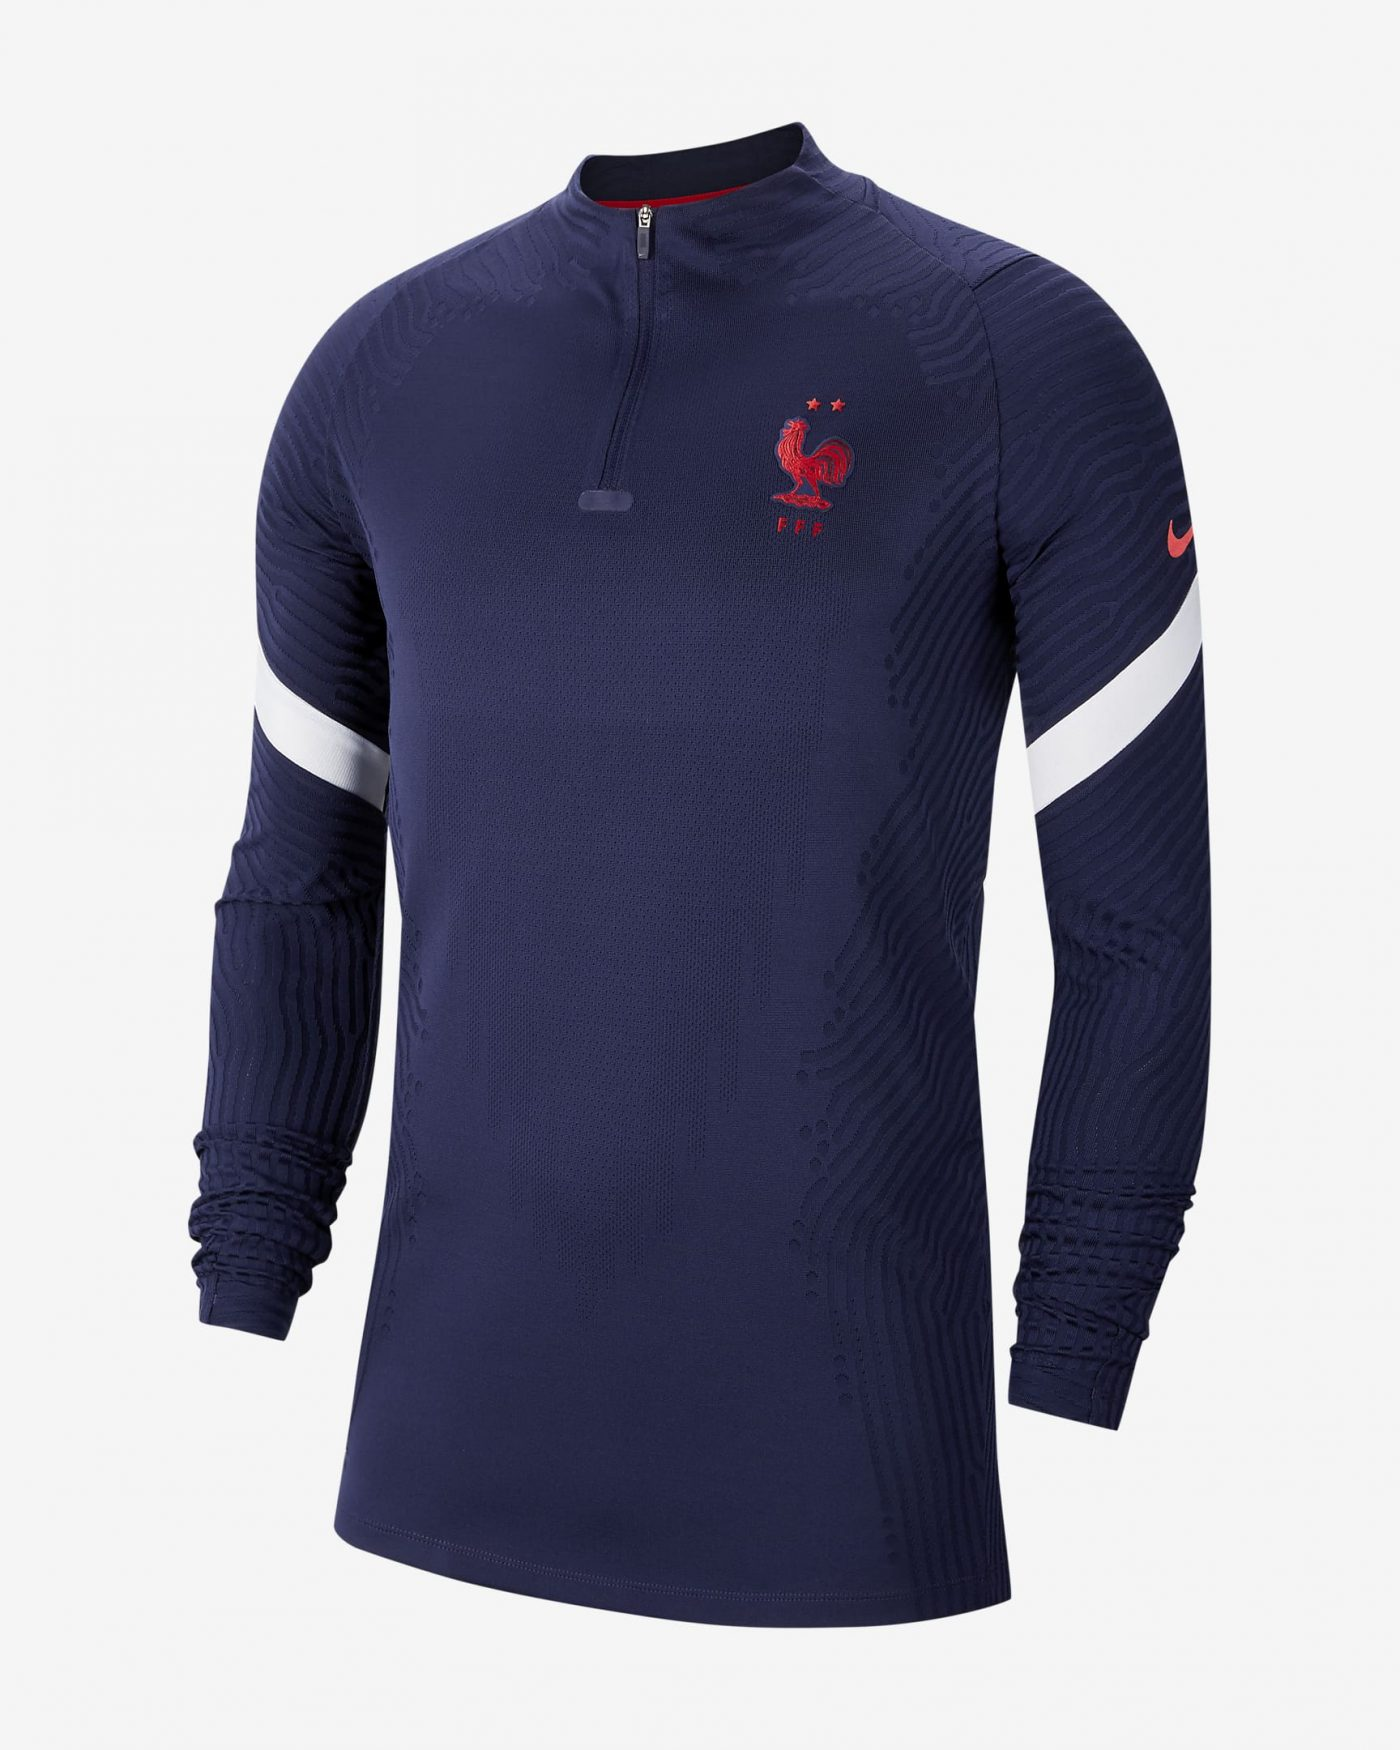 maillot-entrainement-france-2020-vaporknit-nike